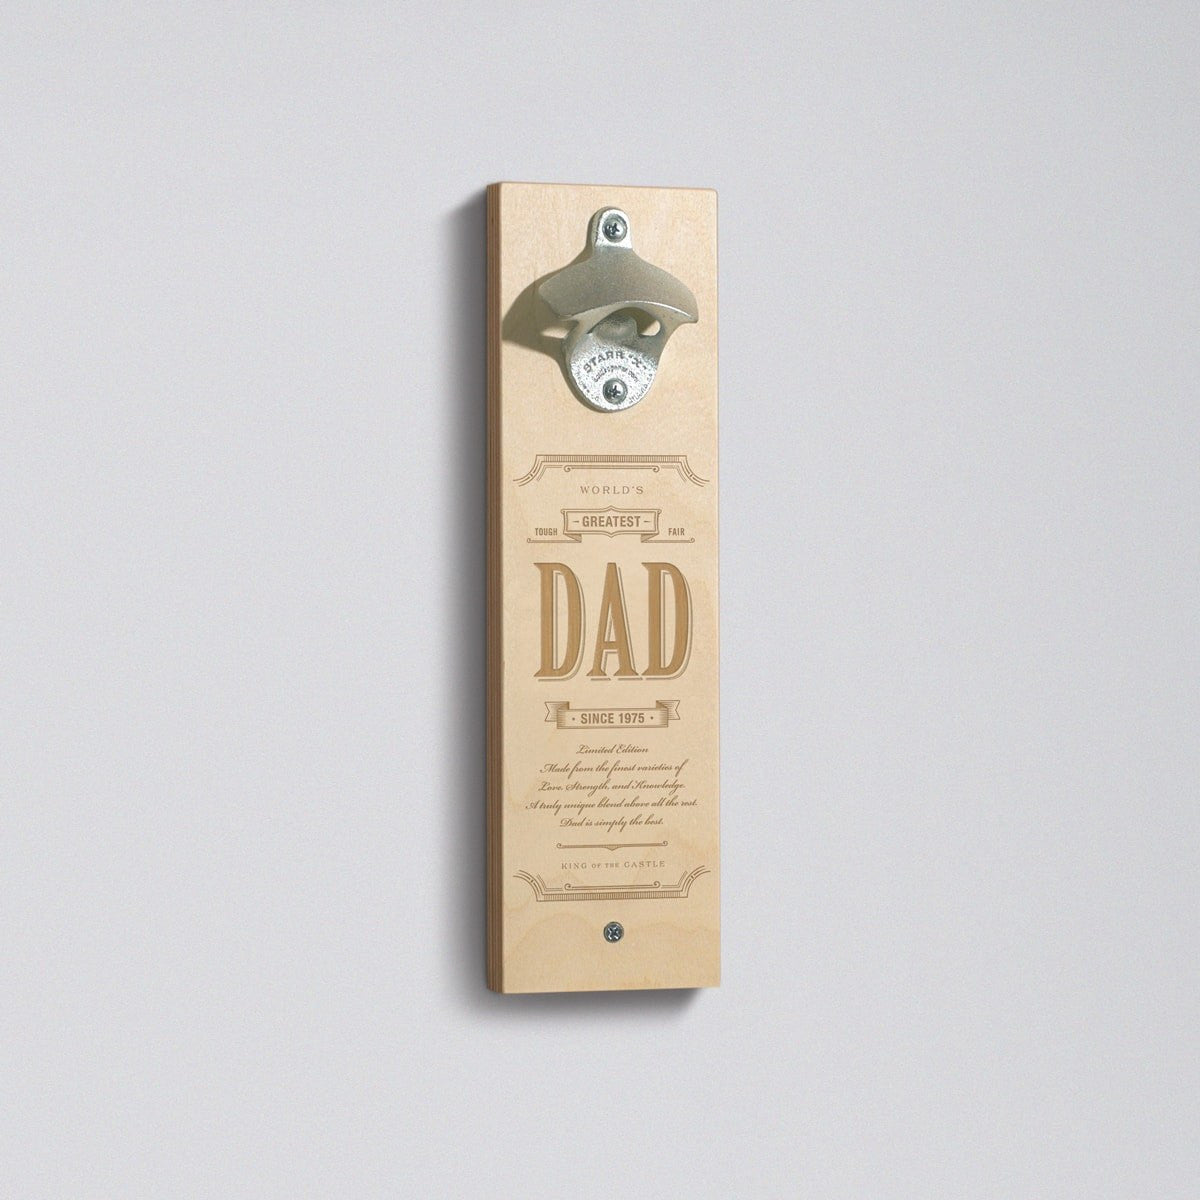 Greatest Dad - Bottle Opener - Main Image